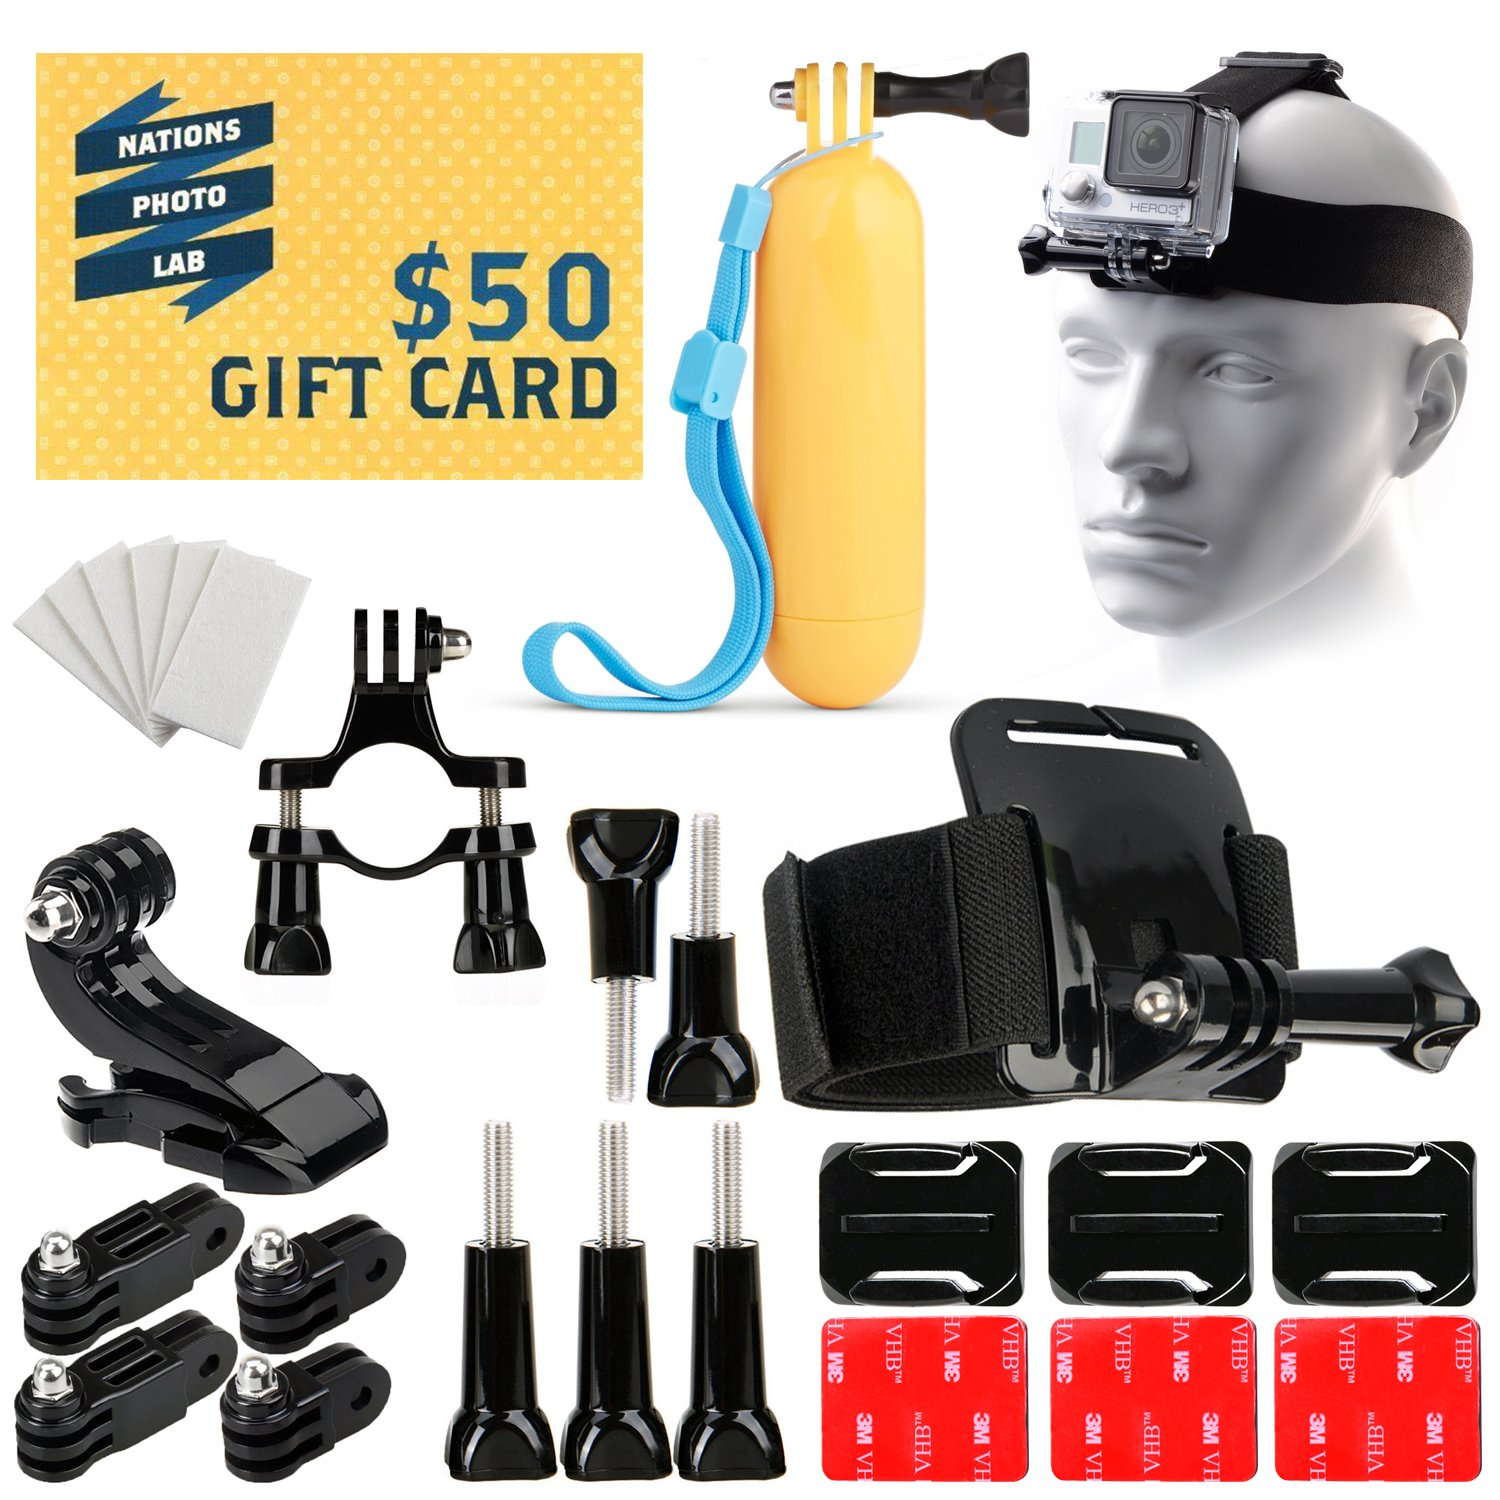 34-in-1 Set of Head, Bike & Helmet Mount Floating Monopod Anti-Fog Inserts Accessories Kit for GoPro Hero 4 3 3+ 2 Plus Silver Black Session 34PC Outdoor Sport Bundle and